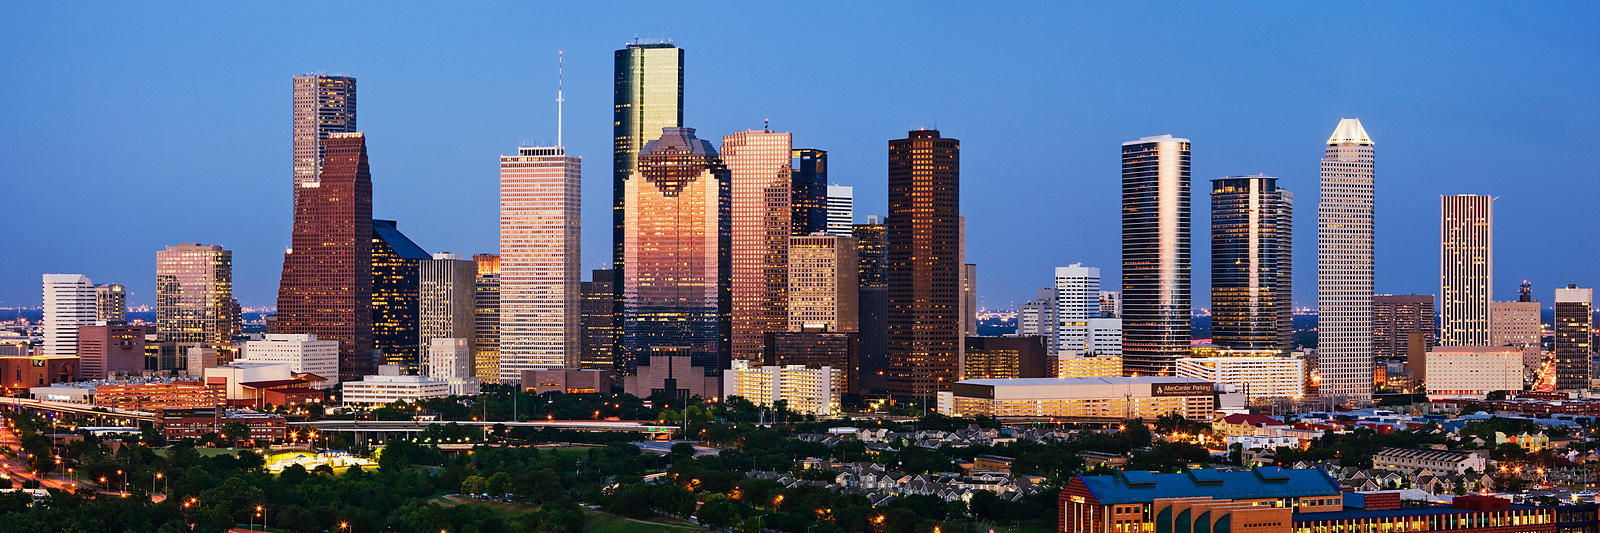 Houston Skyline at Dusk